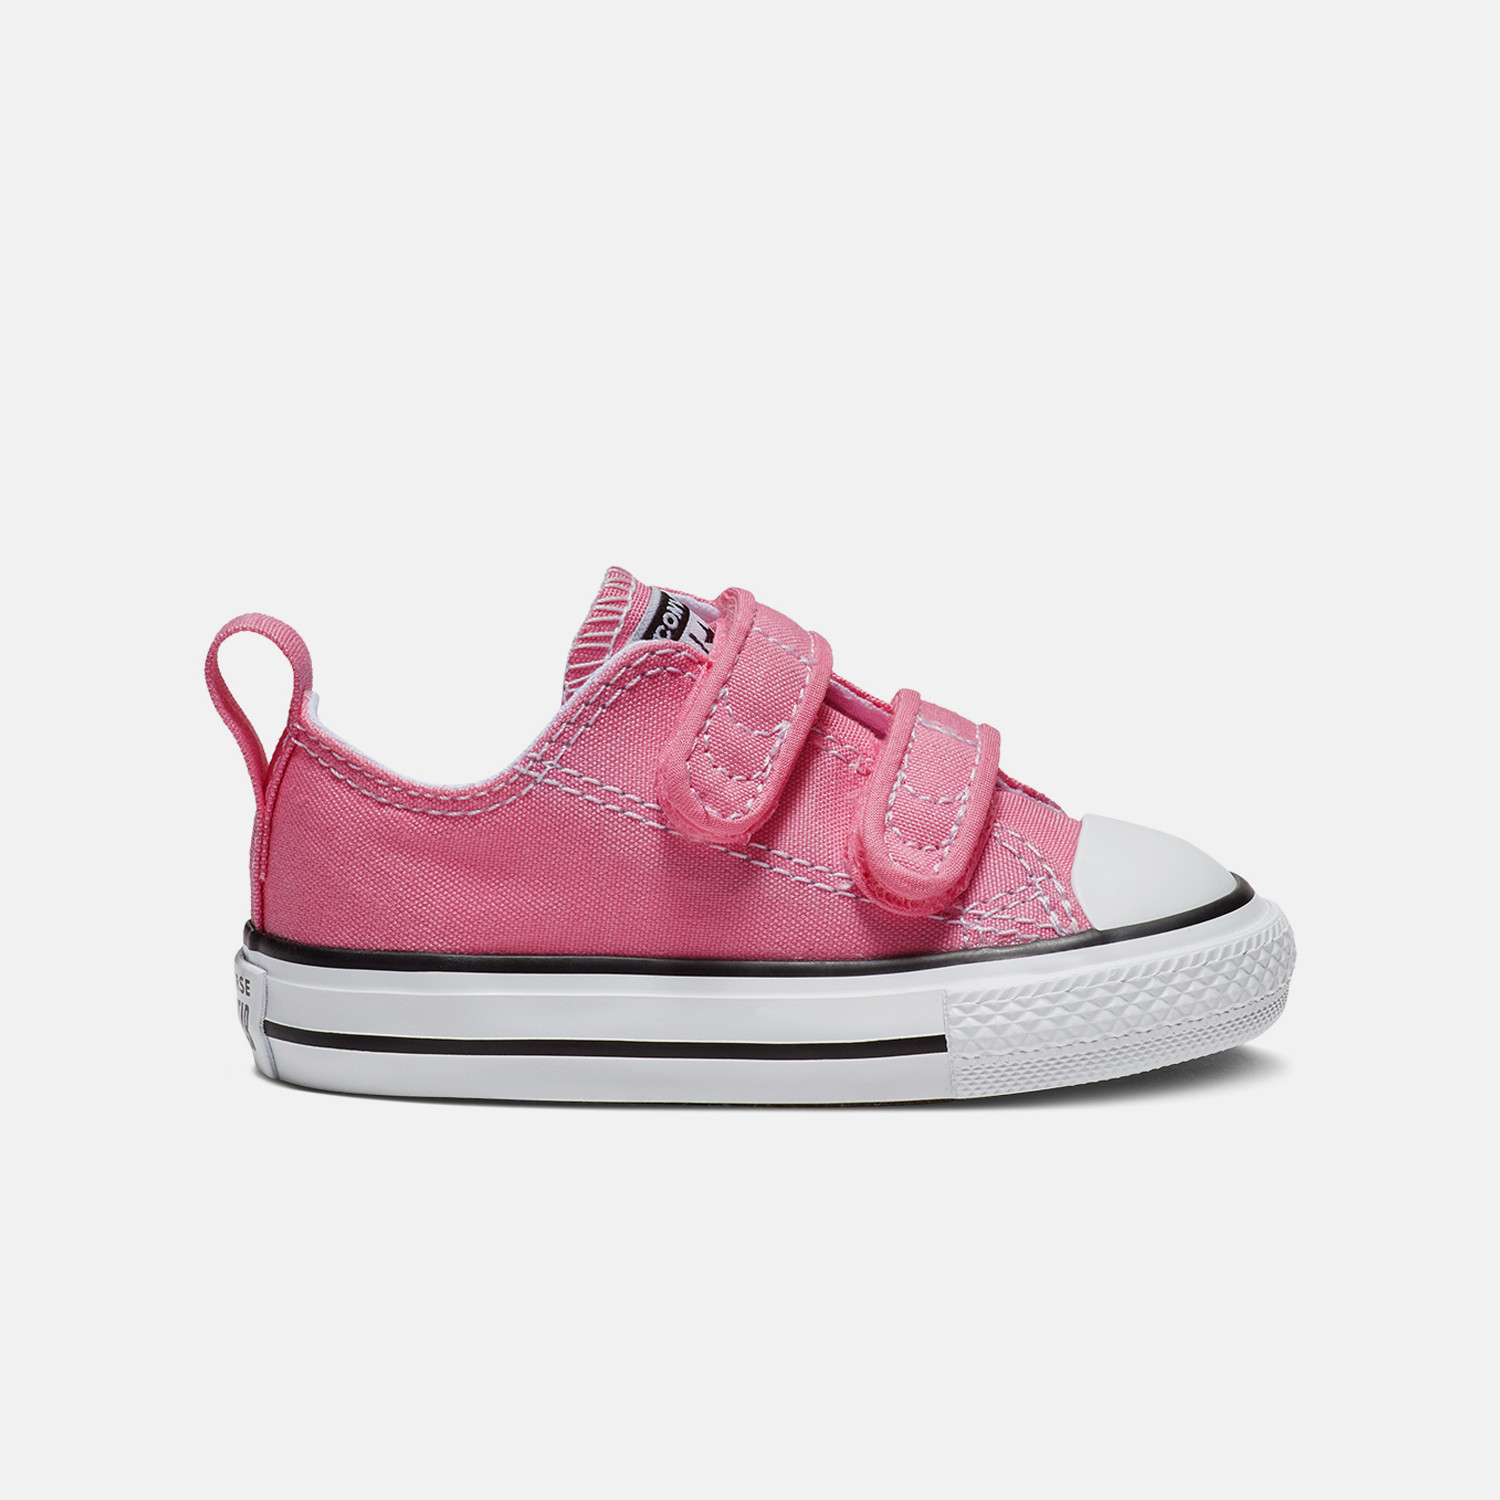 Converse Chuck Taylor All Star Girl's Shoes For Infants (9000049685_3142)